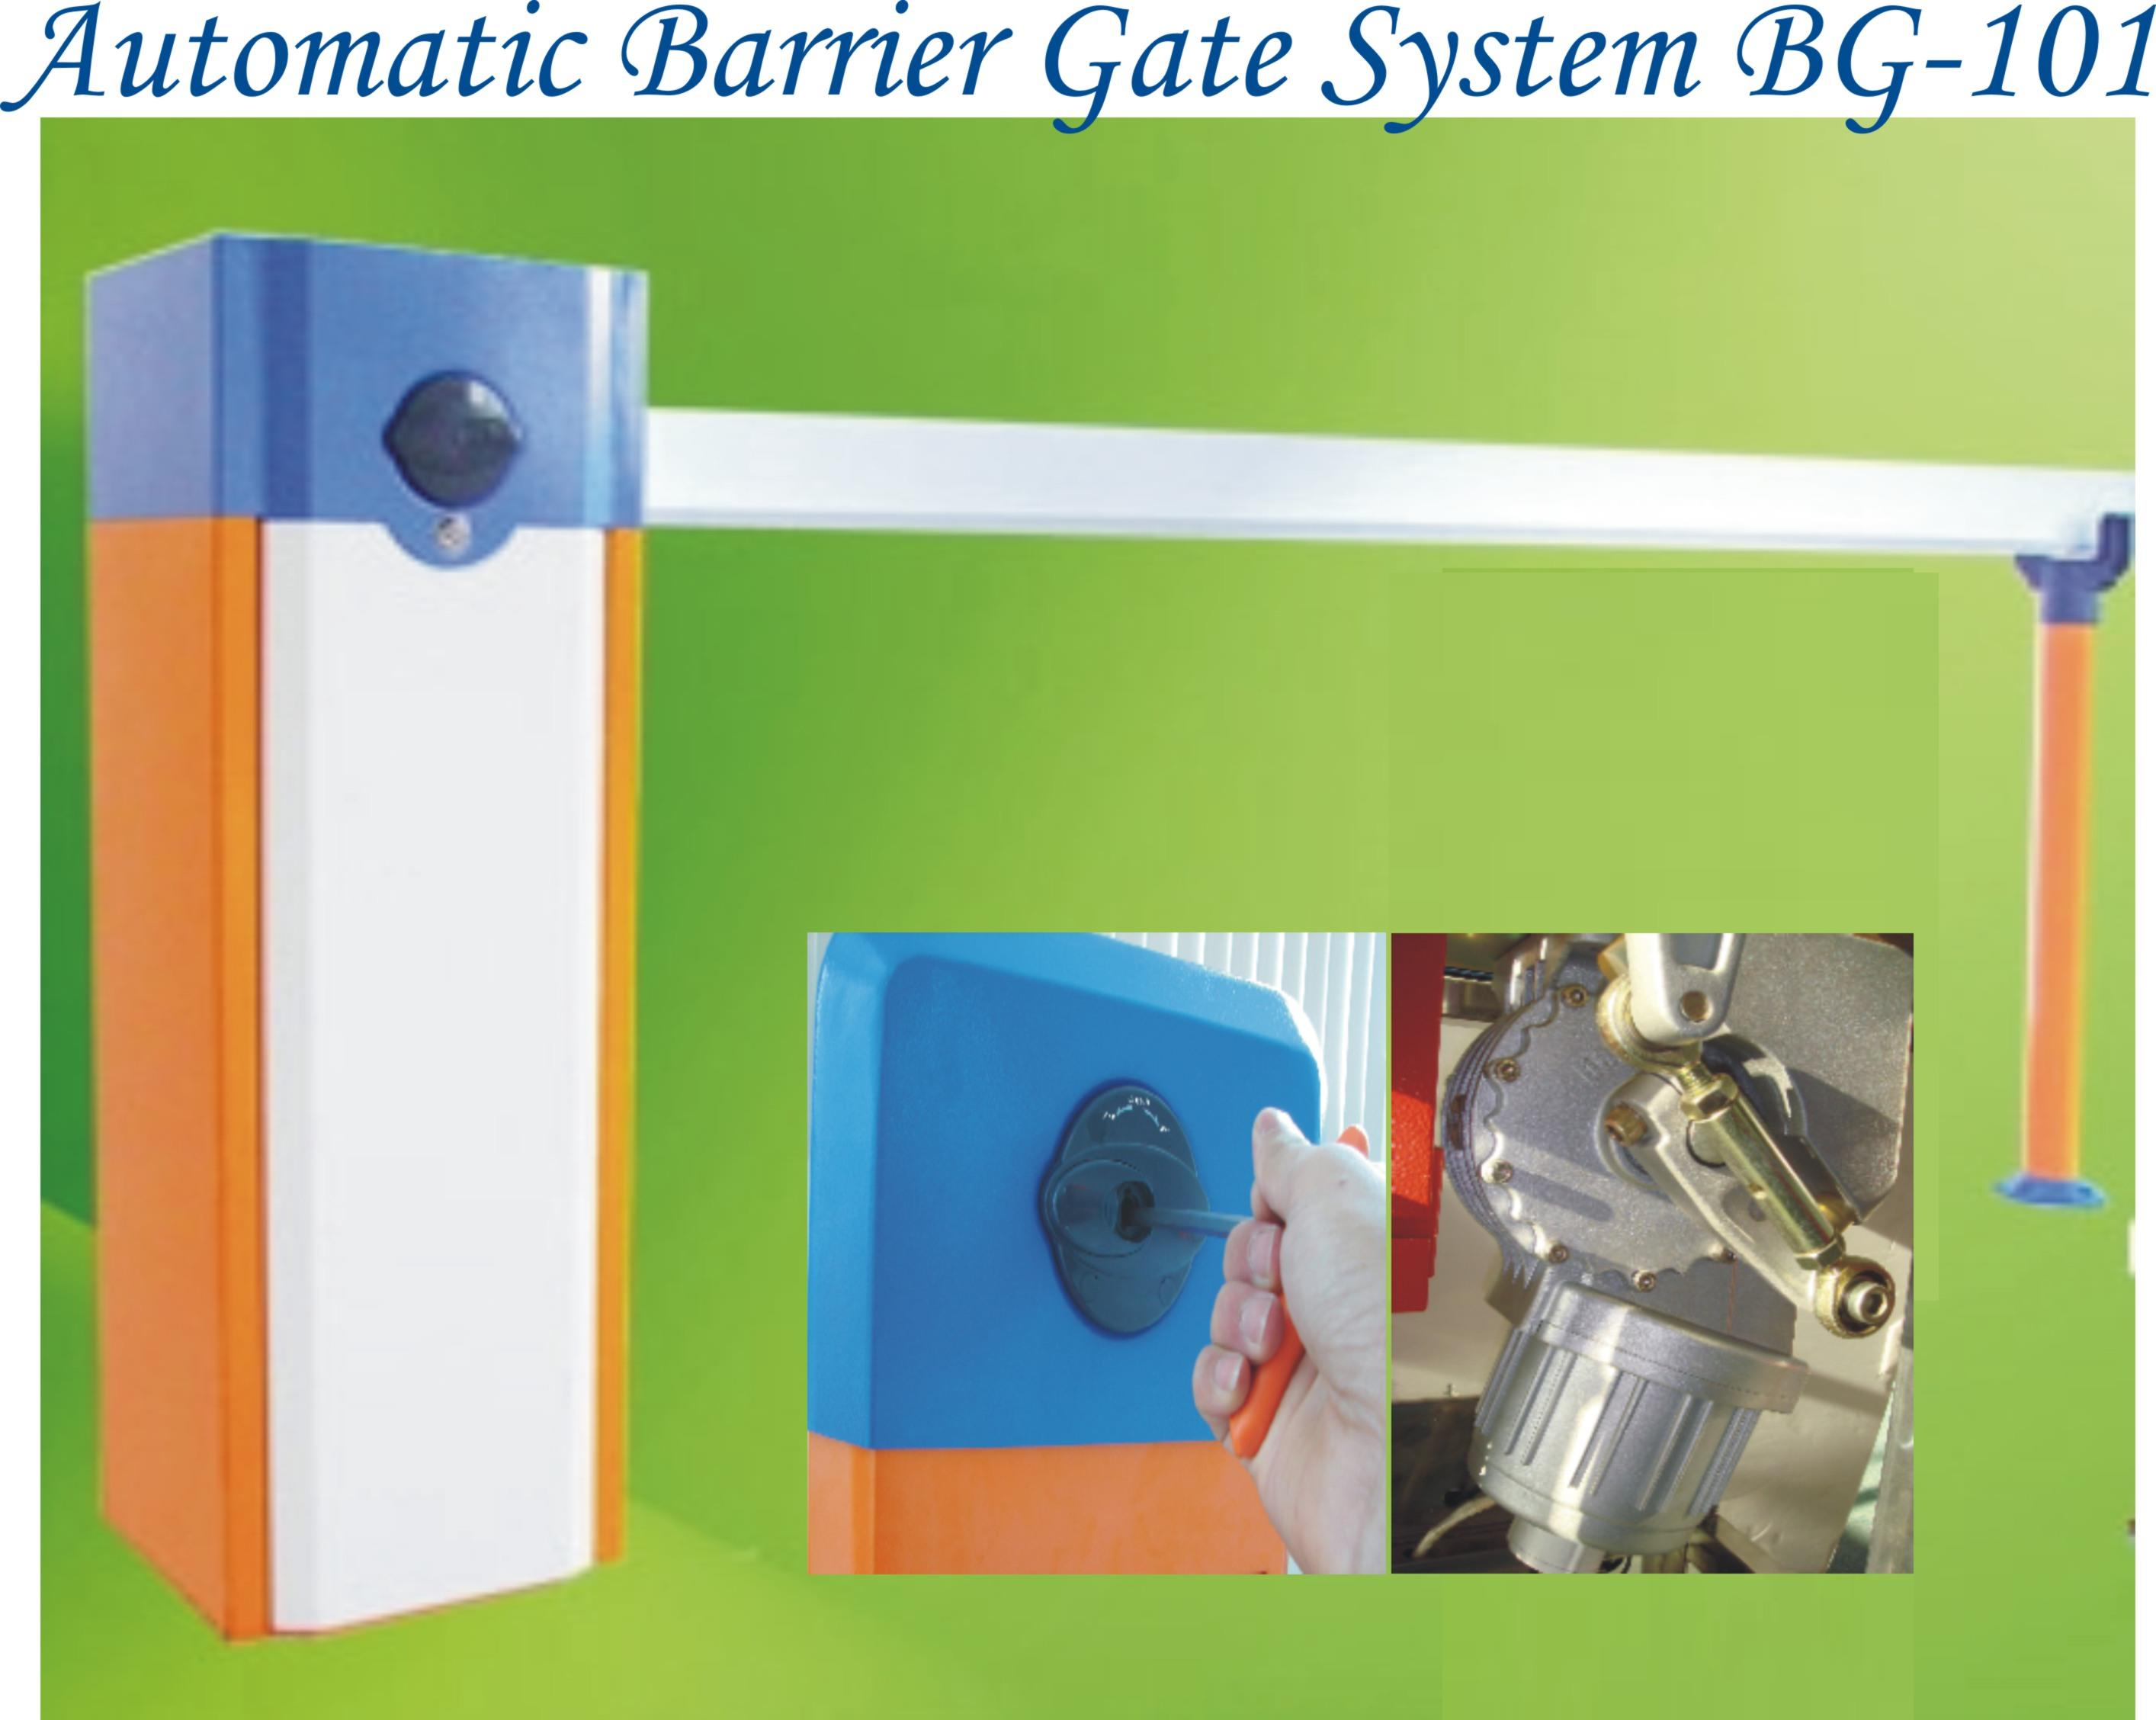 Sell Barrier Gate BG-101 from Indonesia by CV  Neo Teknik Prima,Cheap Price